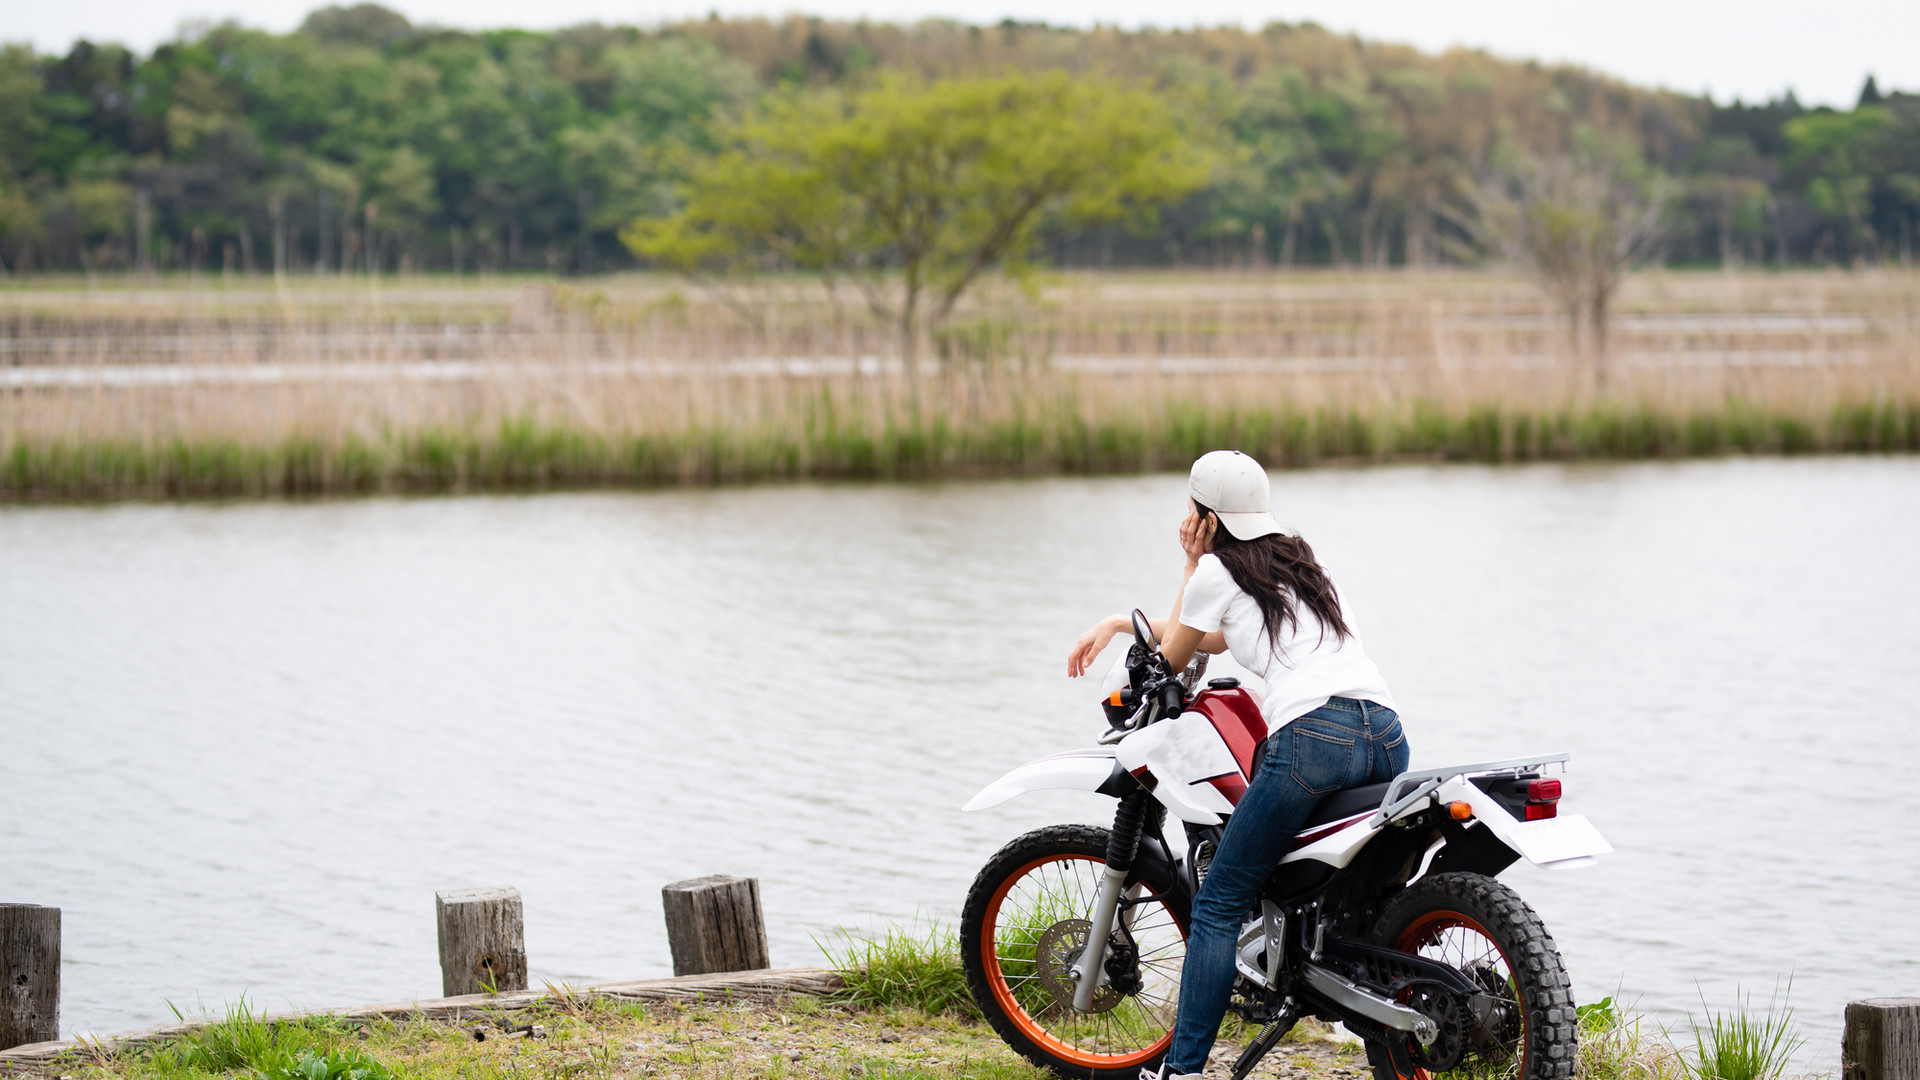 Motorcycle by the River